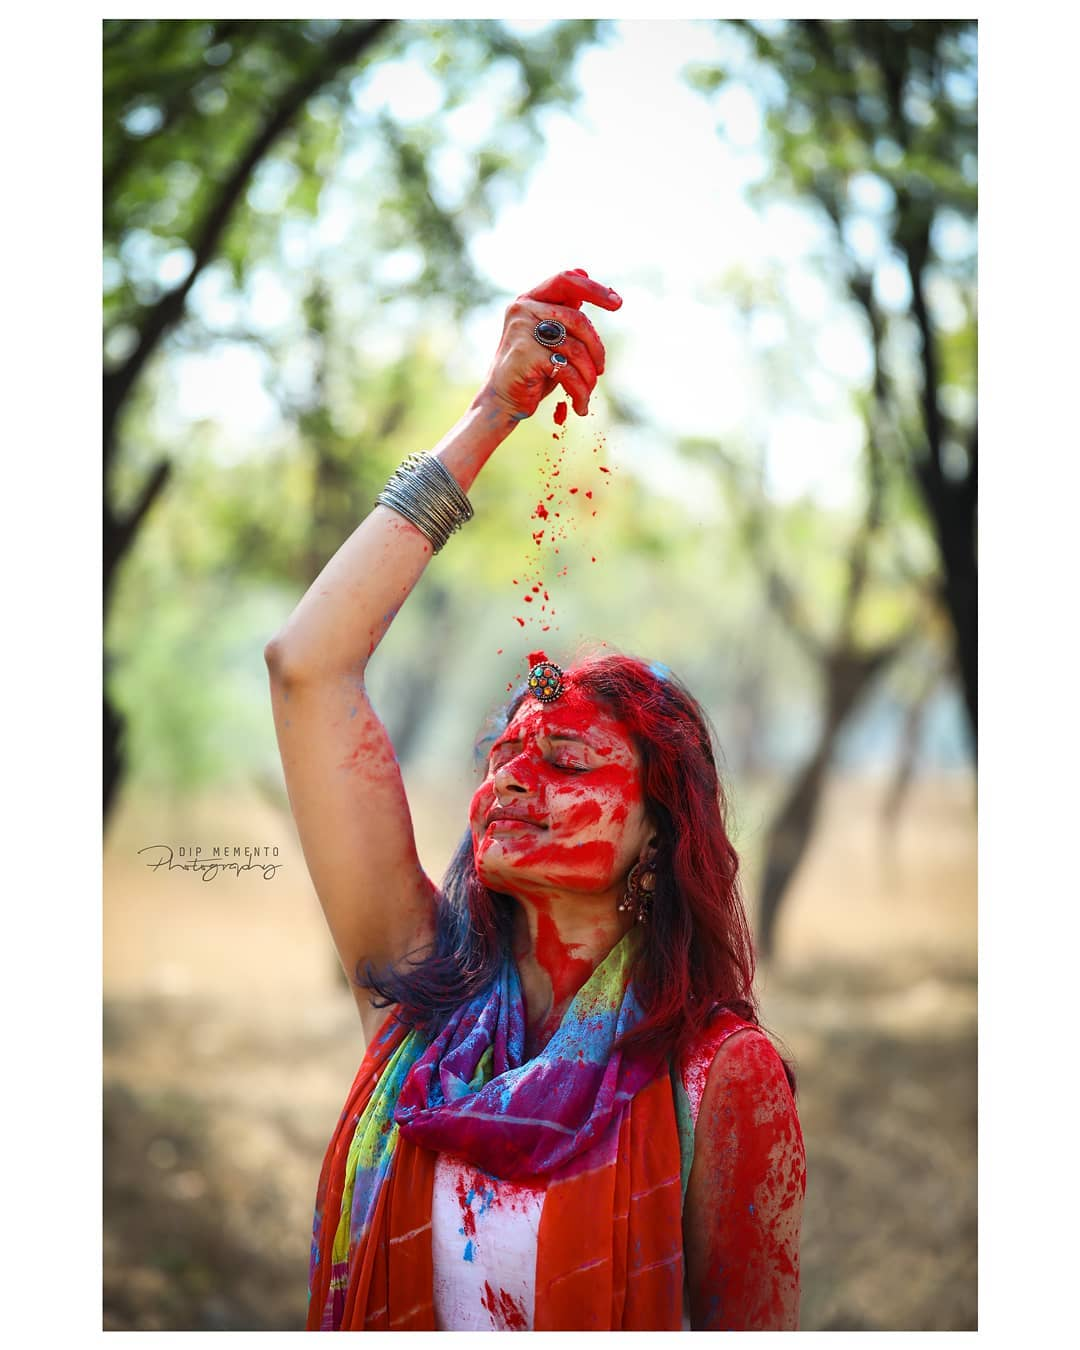 Dip Memento Photography,  color..., holiconcept, concept, holishoot, dip_memento_photography, memento_photography, holi, color, holishoot, colursfestival#IndianFestival, indianculturee, indianpictures#ahmedabad, gandhinagar, bloggers, bloggerstyle#bloggerslife, indianblogger, indiaig, indian, indiangirl#fashionbloggers, fashionblog, ethnic, styleupindia#fashion, photography, model, fashionmodel, holifestival